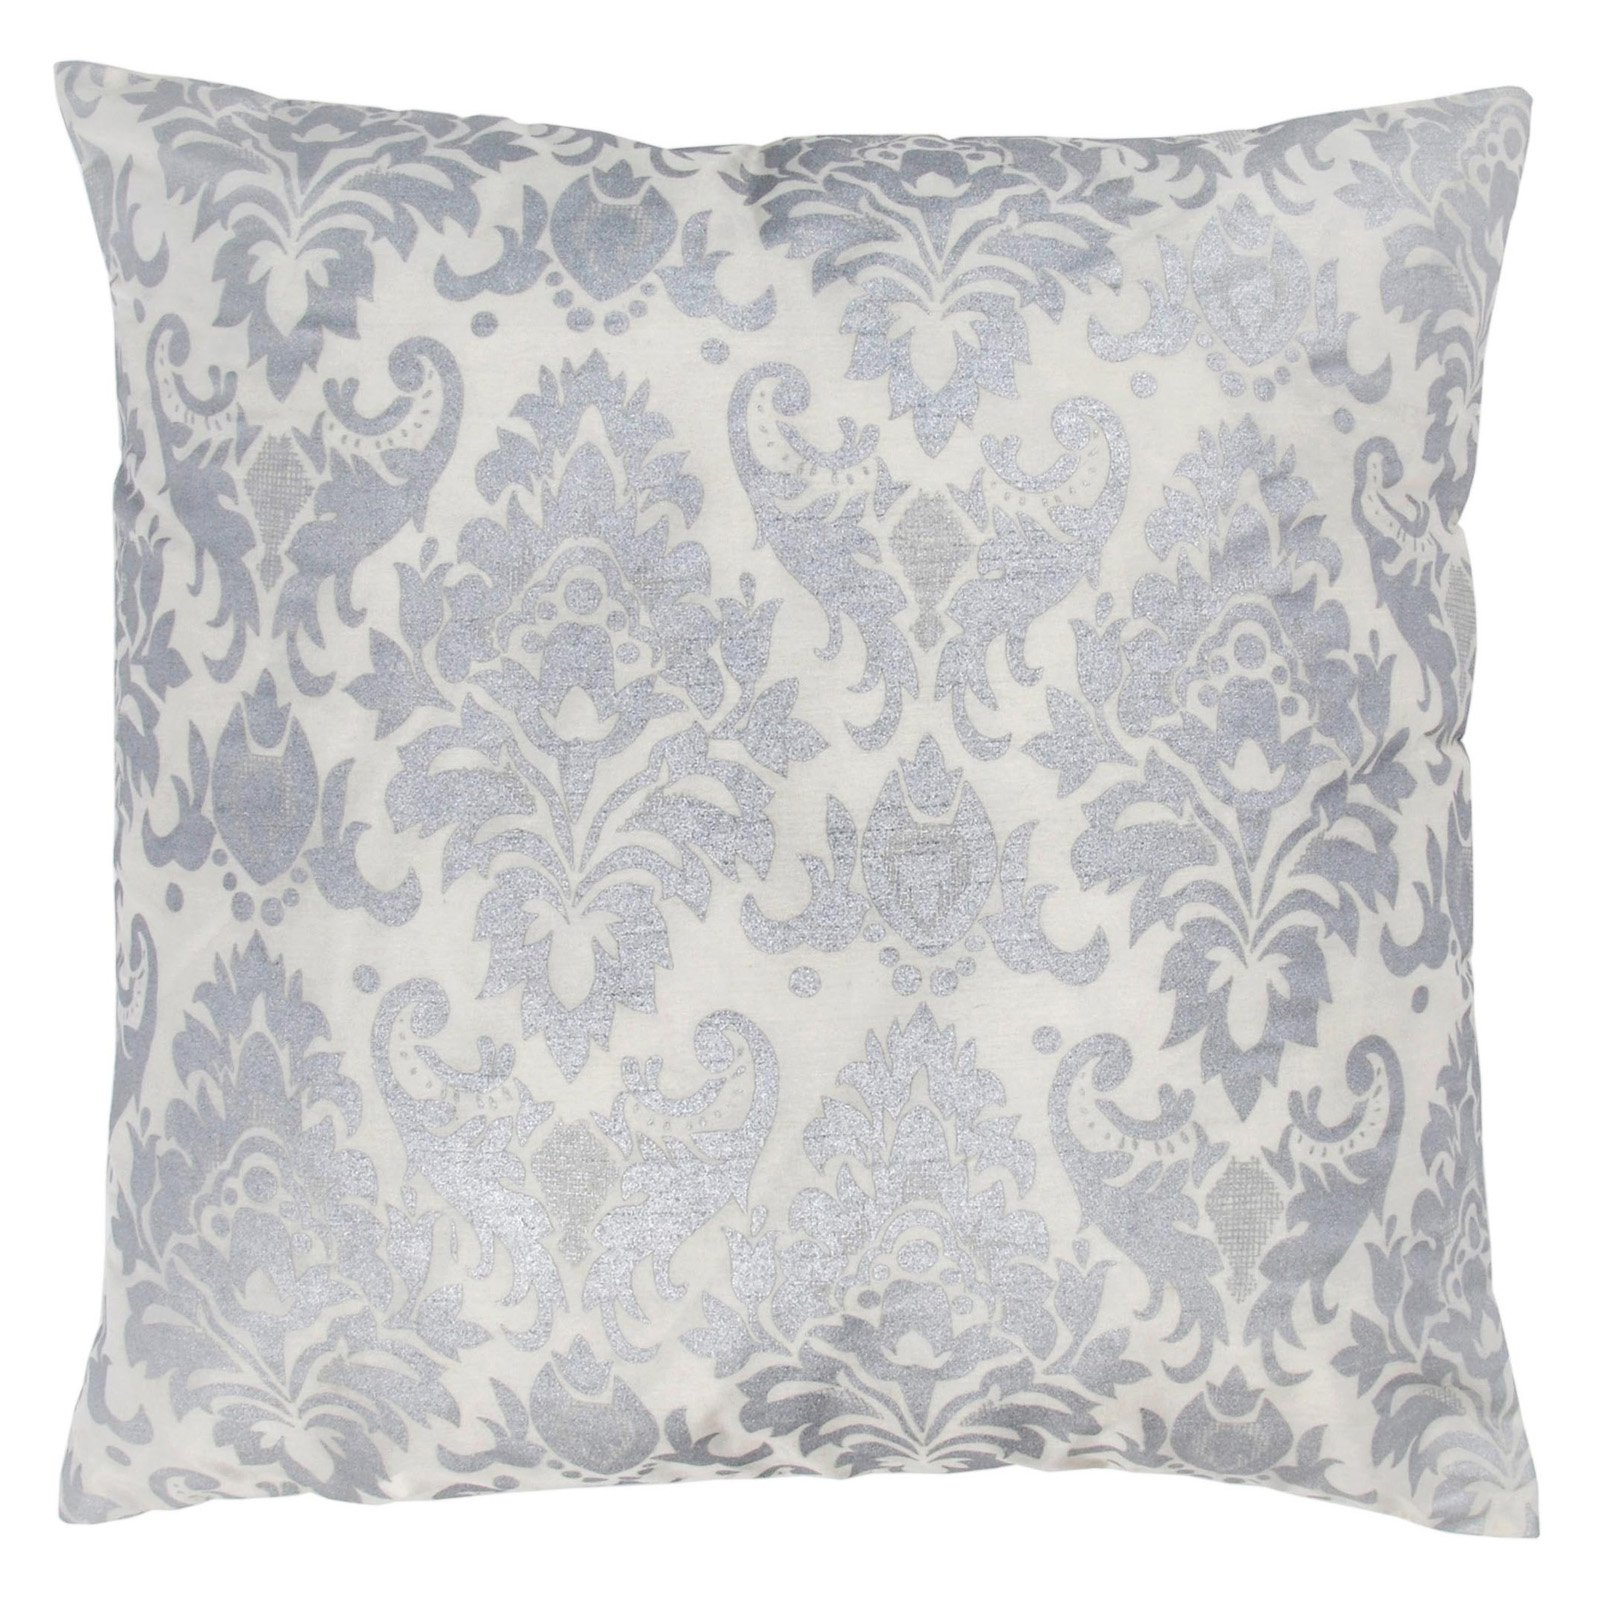 """Rizzy Home damask 18"""" x 18""""Polyesterdecorative filled pillow"""